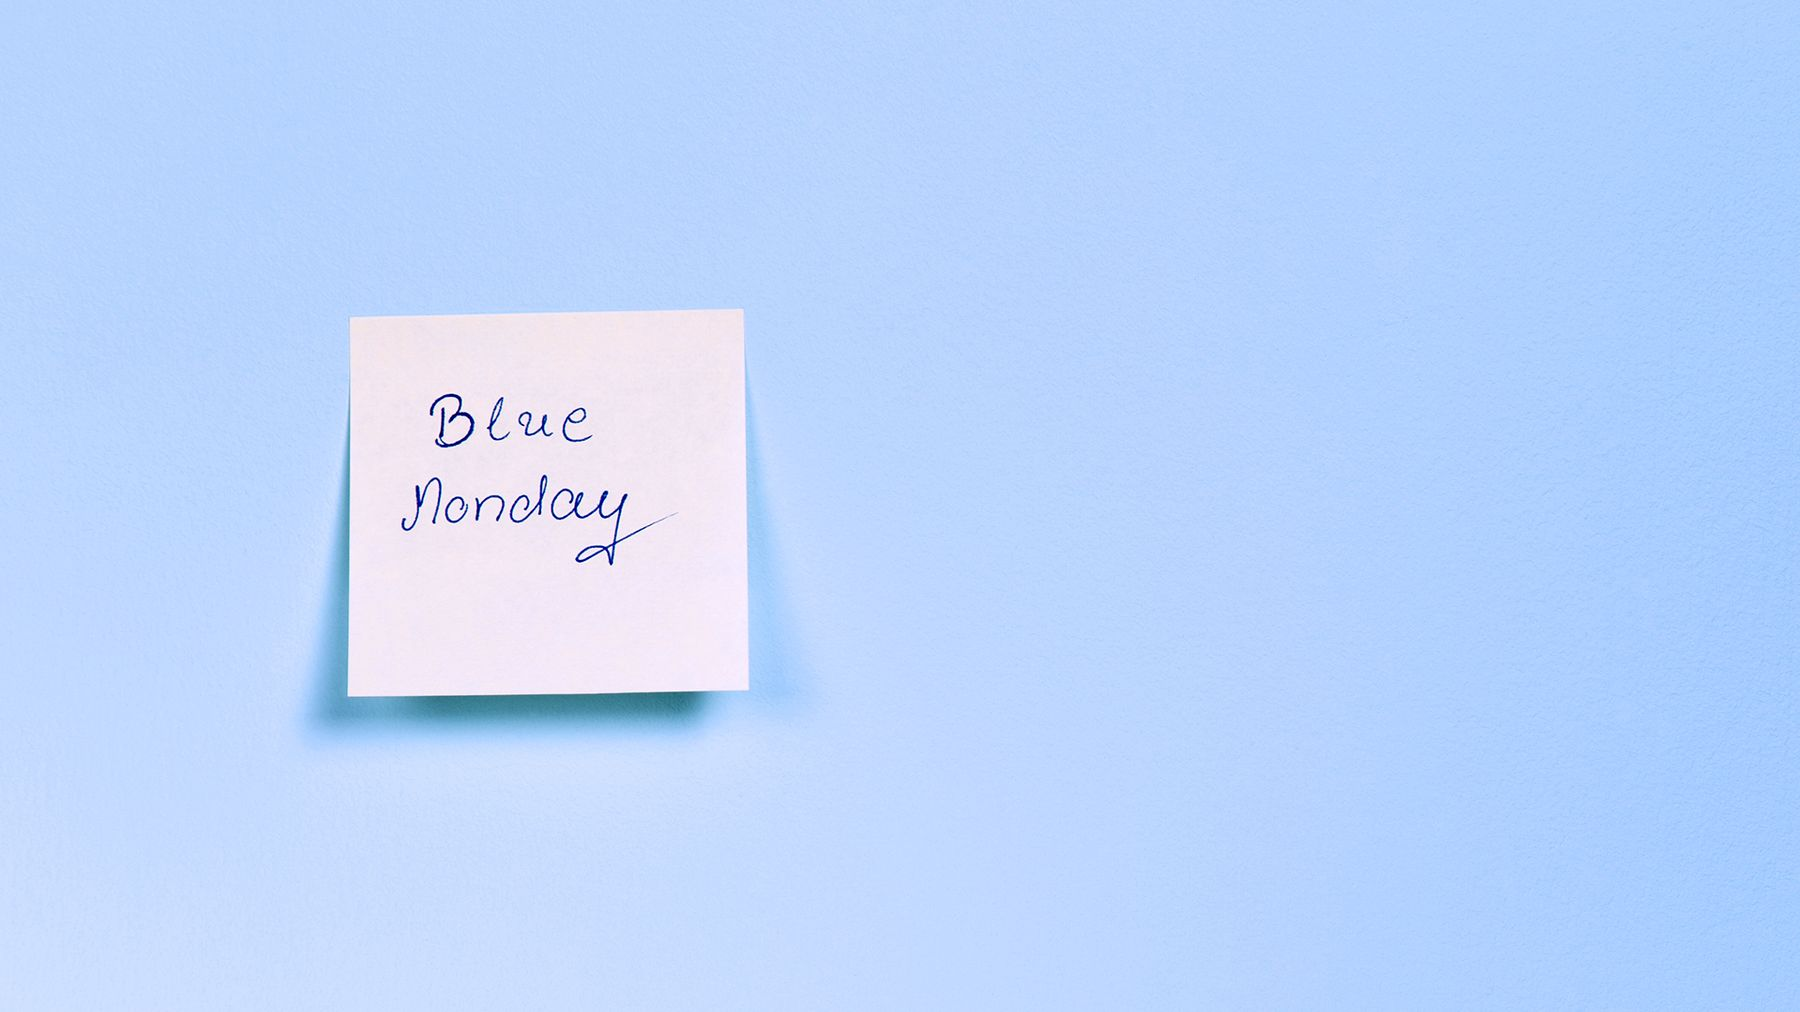 blue background, white sticky note with 'Blue Monday' written on it